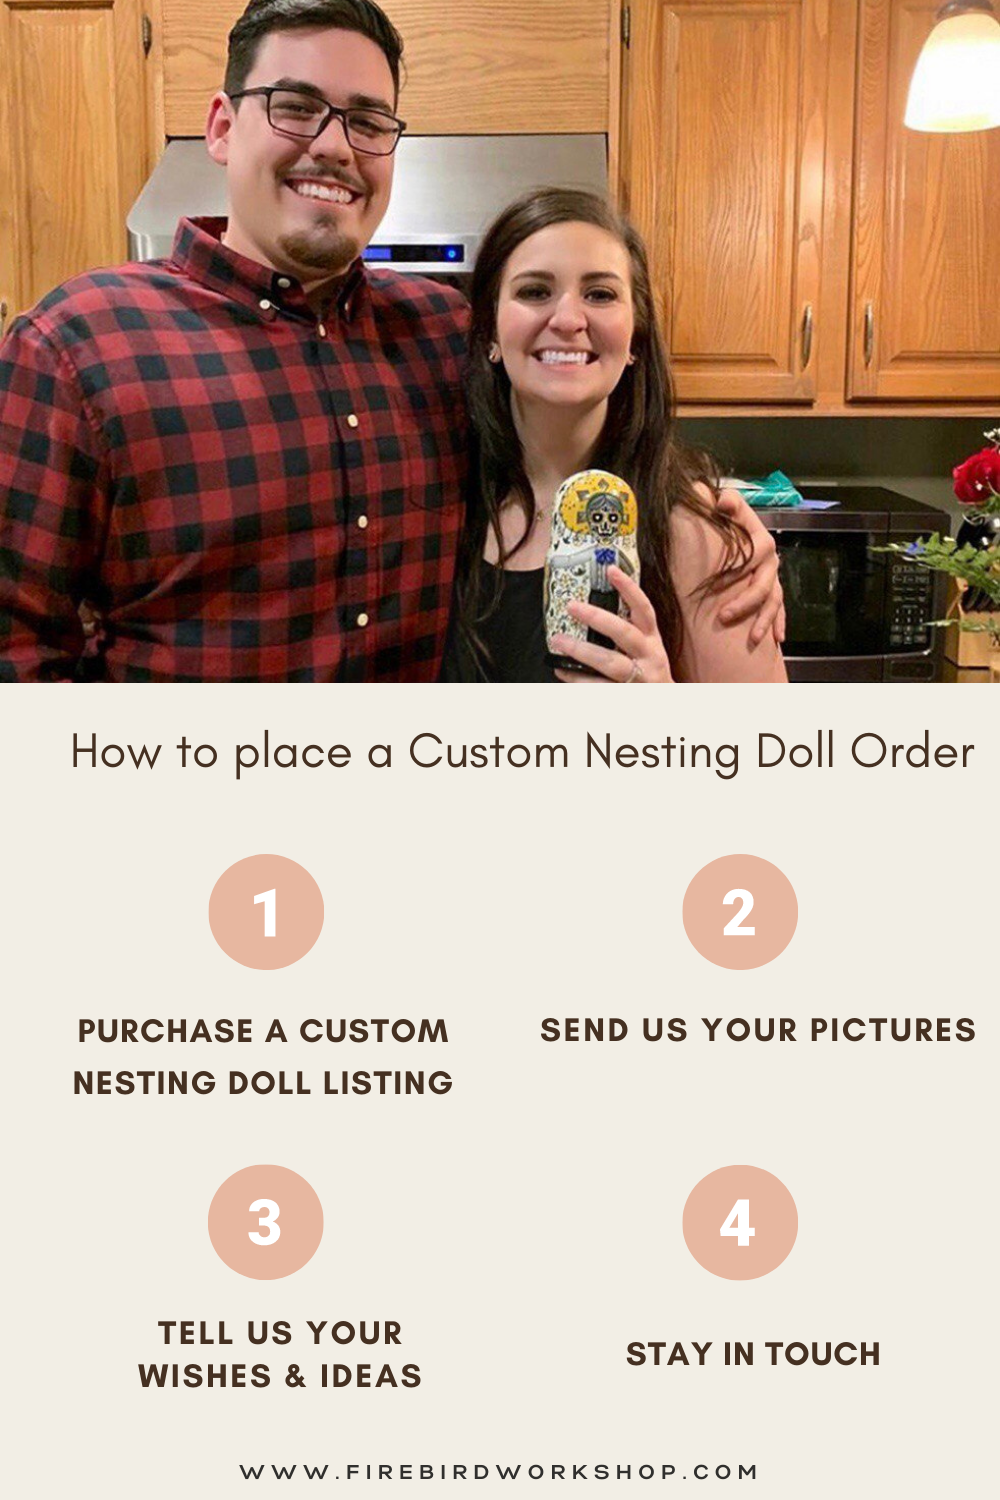 How to place a Custom Nesting Doll Order. (1) PURCHASE A CUSTOM NESTING DOLL LISTING. (2) Send us your pictures for the matryoshka. (3) tell US YOUR WISHES & ideas. (4)Stay in touch WITH OUR TEAM.